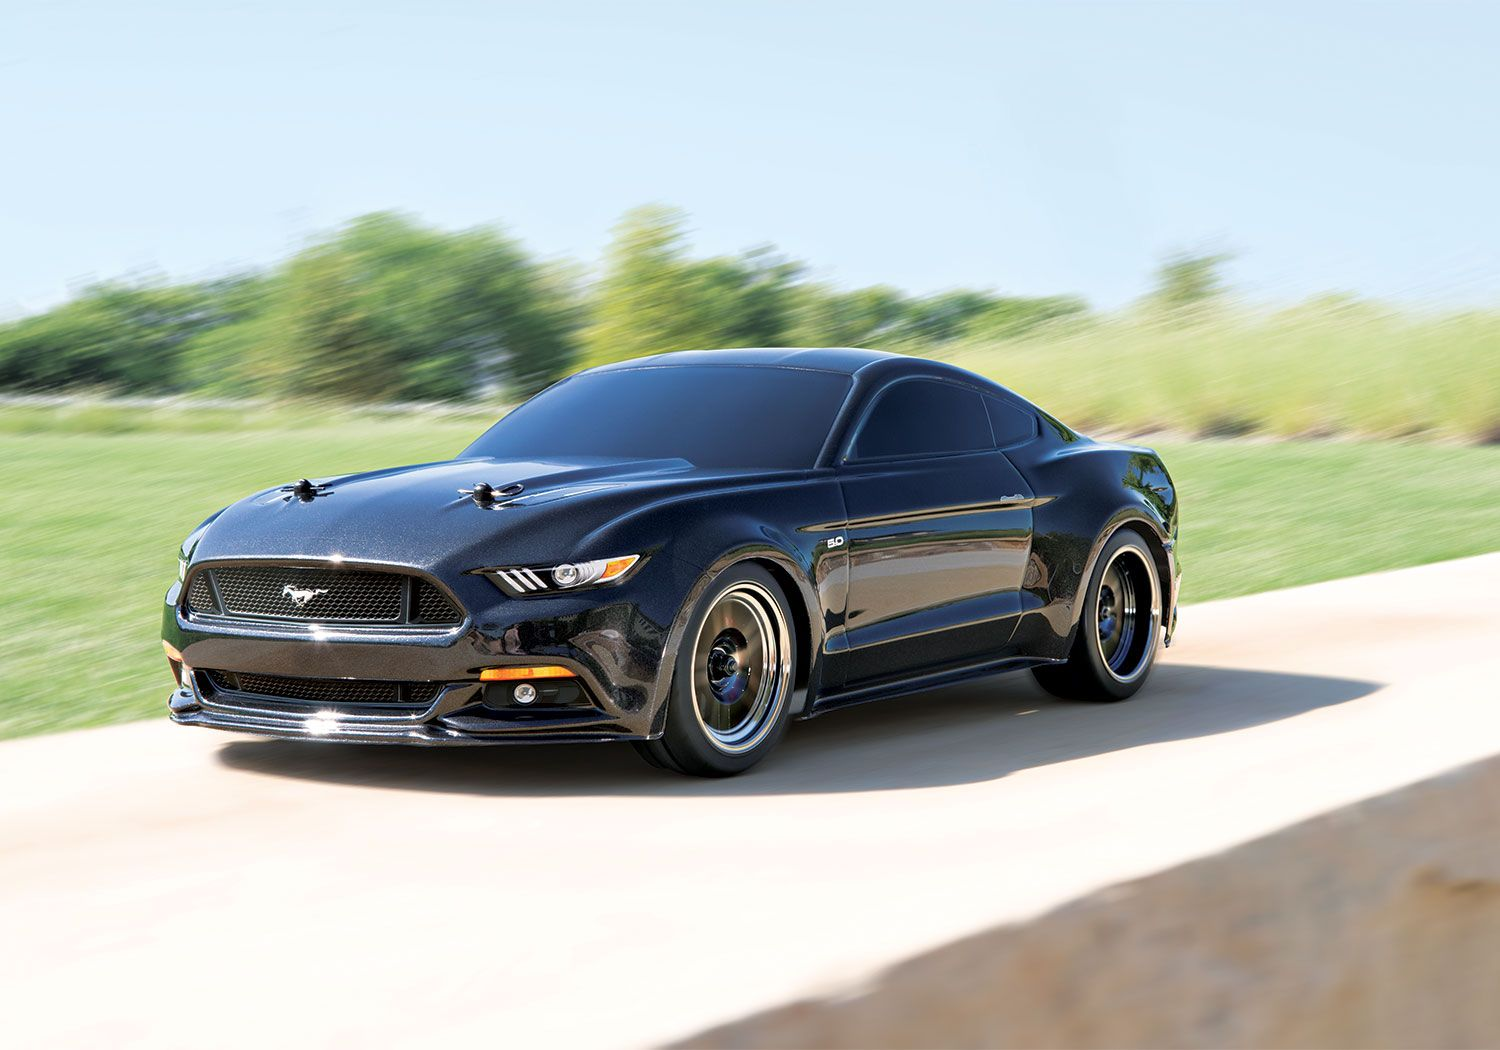 Tear Around Your Yard With This Remote Control Ford Mustang Gt By Traxxas I M Not Saying You Can Terrorize Small Animals Ford Mustang Gt Ford Mustang Traxxas